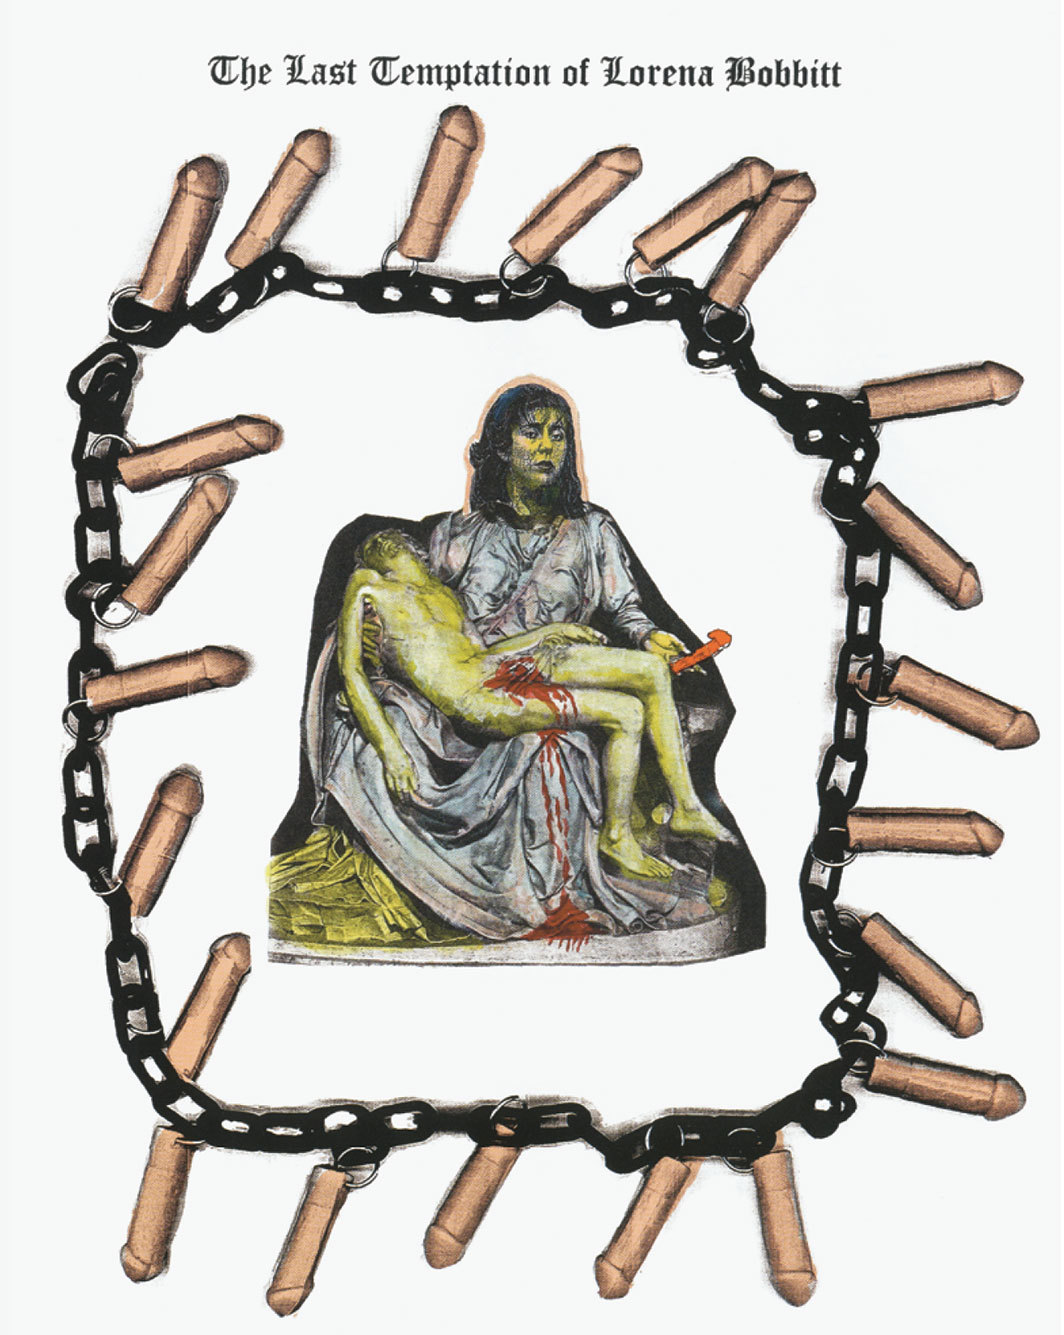 "Mary Beth Edelson, The Last Temptation of Lorena Bobbitt, 1993, watercolor and ink on photocopy, plastic, plastic chain, 17 × 11""."